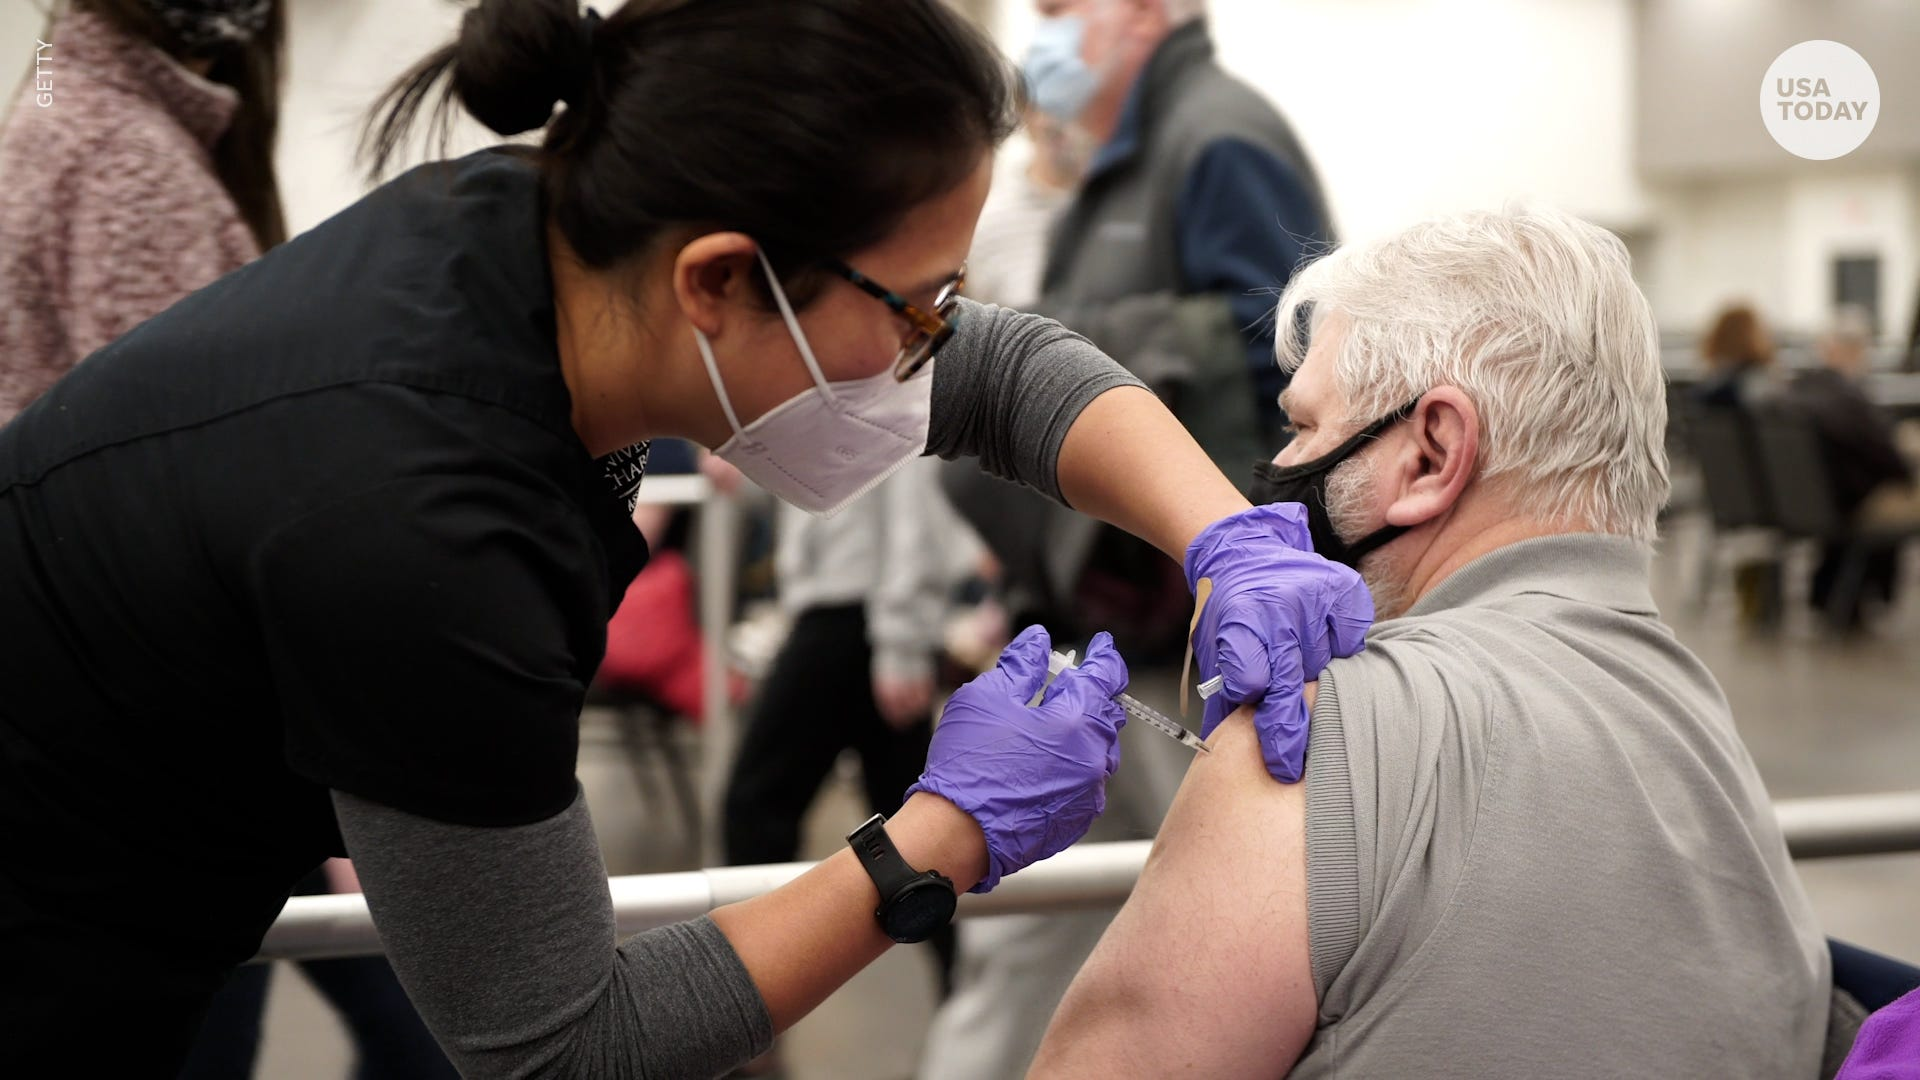 Poll shows majority of unvaccinated Americans don't plan on getting full protection: Live COVID-19 updates